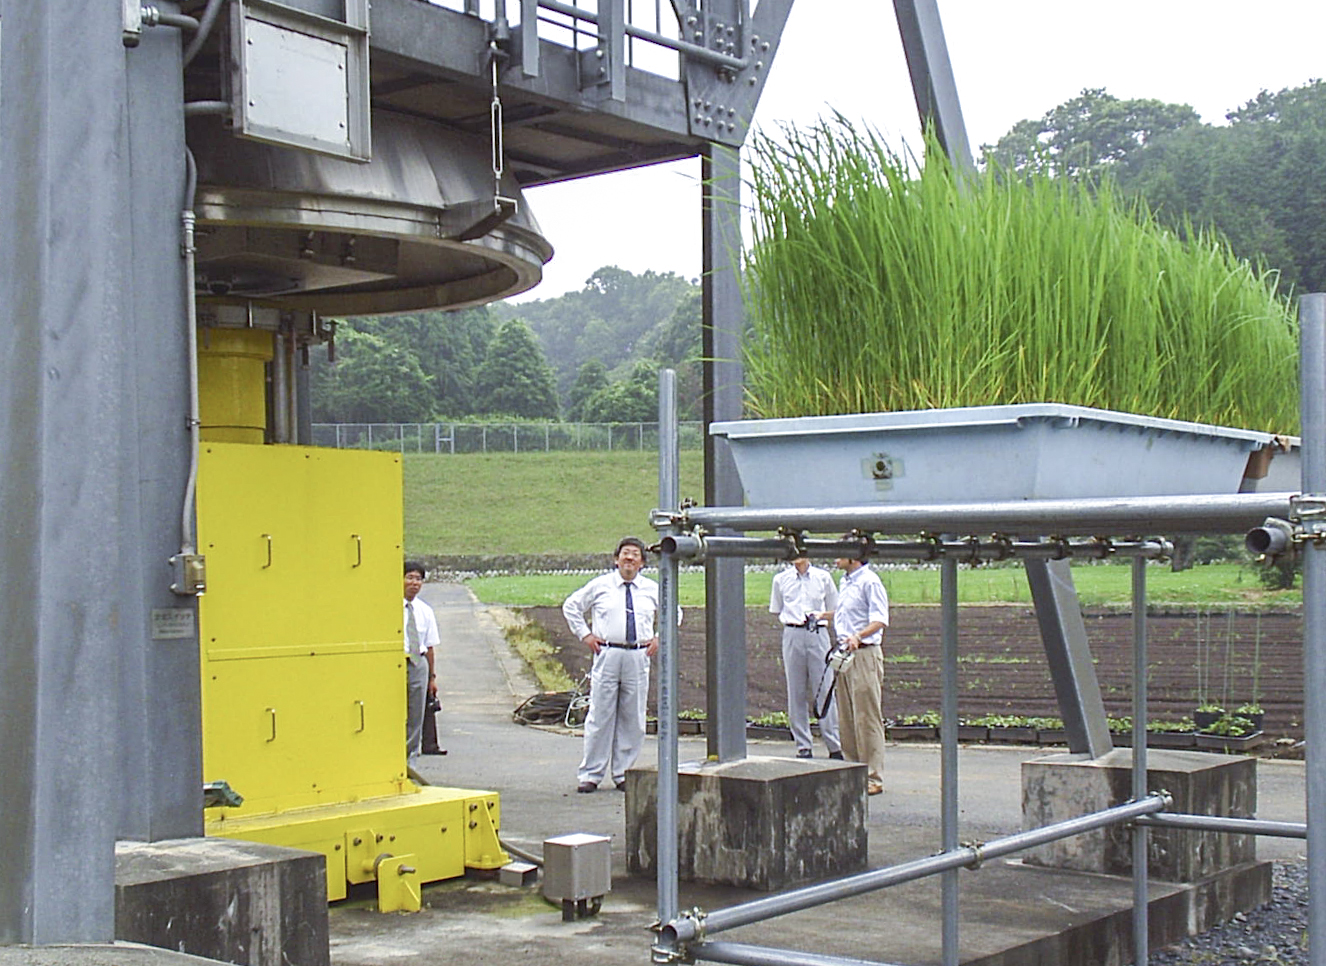 Short-lived plants like grasses are typically placed closest to the radiation source, 2016. Photograph by Govinda Rizal